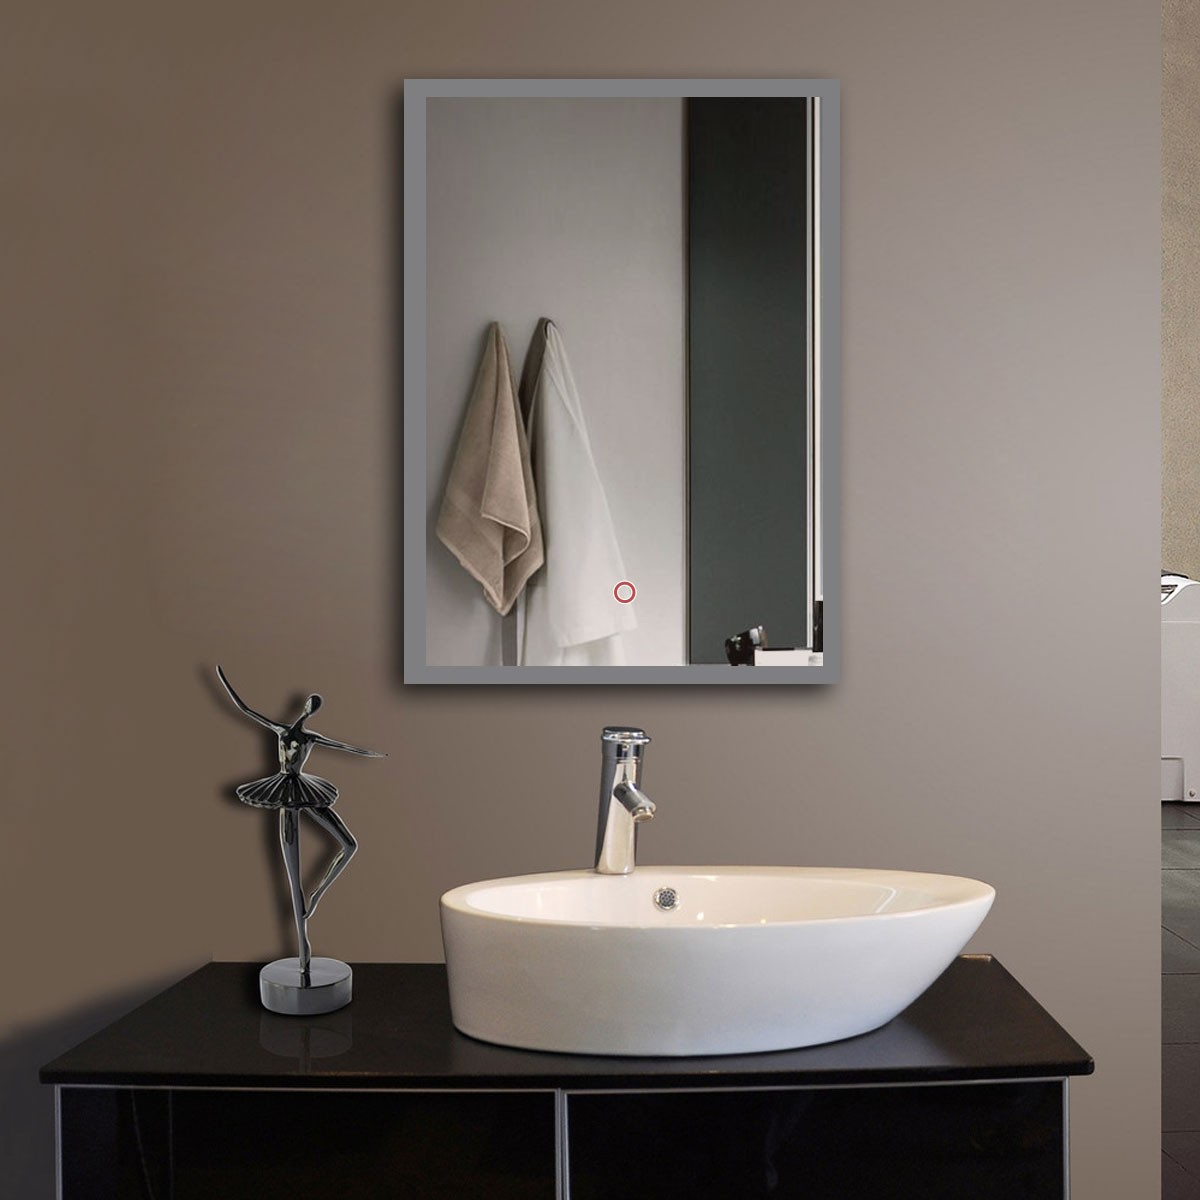 20 X 28 In Vertical Led Bathroom Silvered Mirror With Touch Button